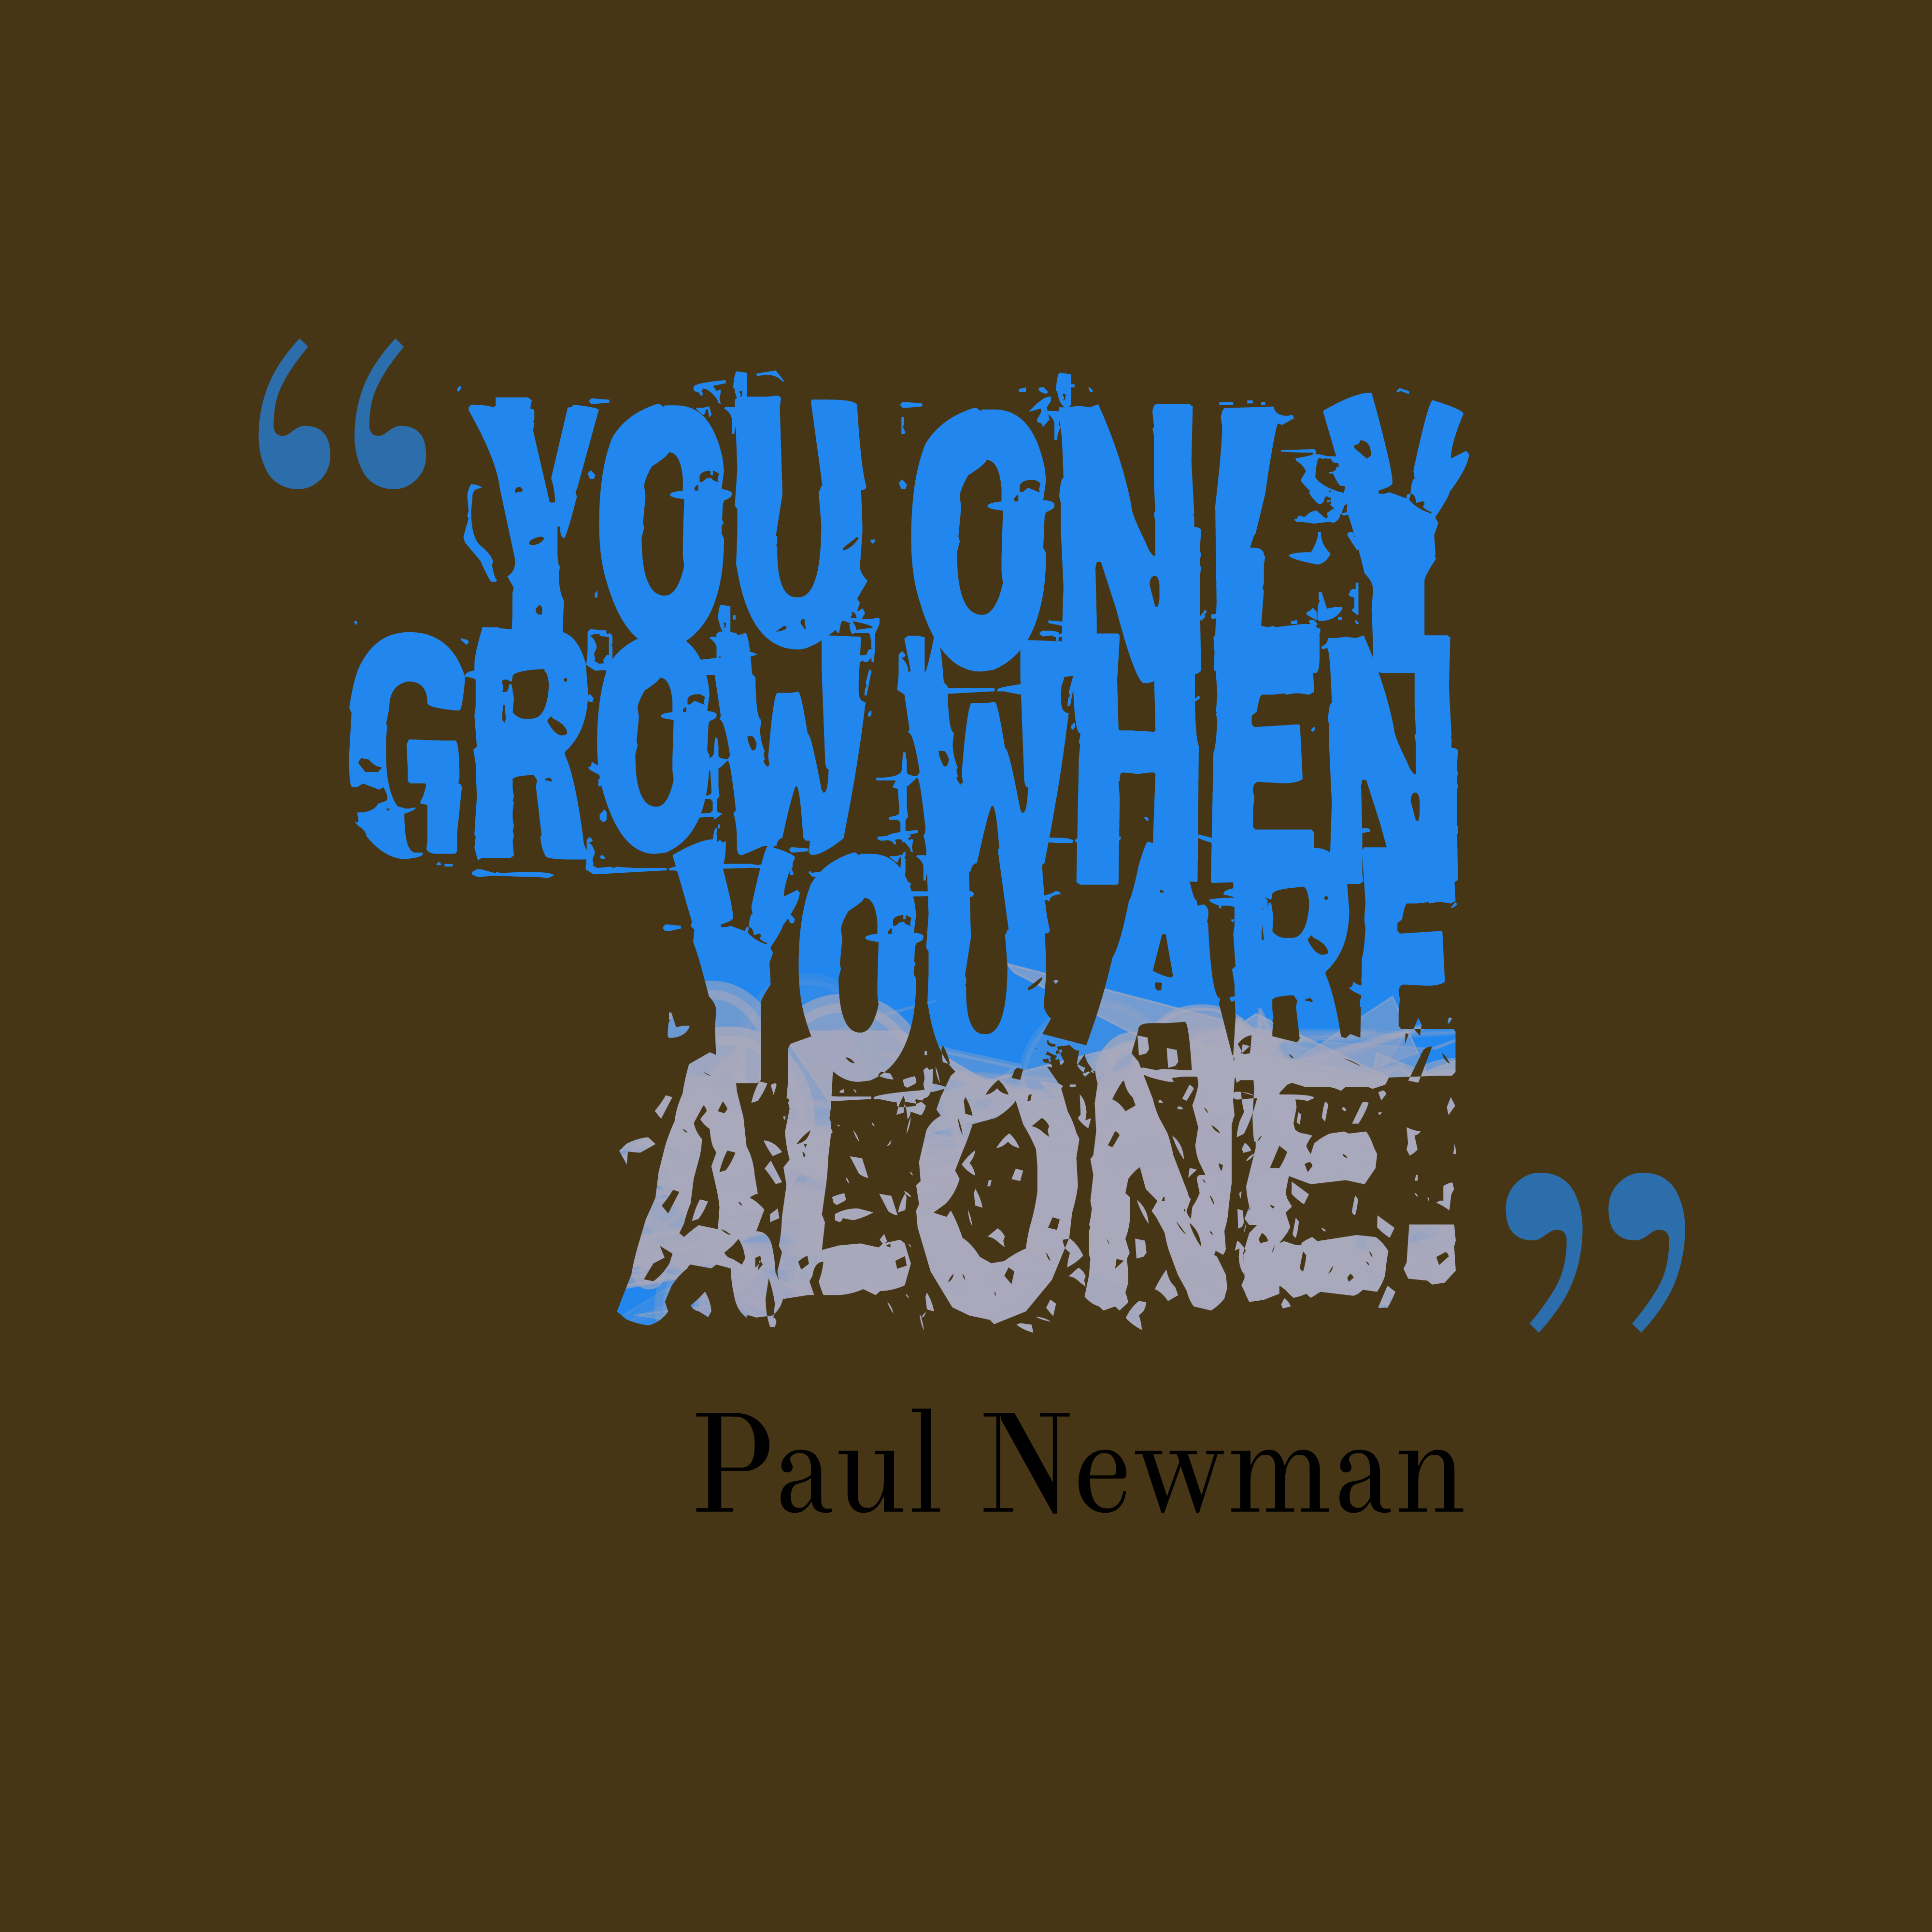 Quotes image of You only grow when you are alone.